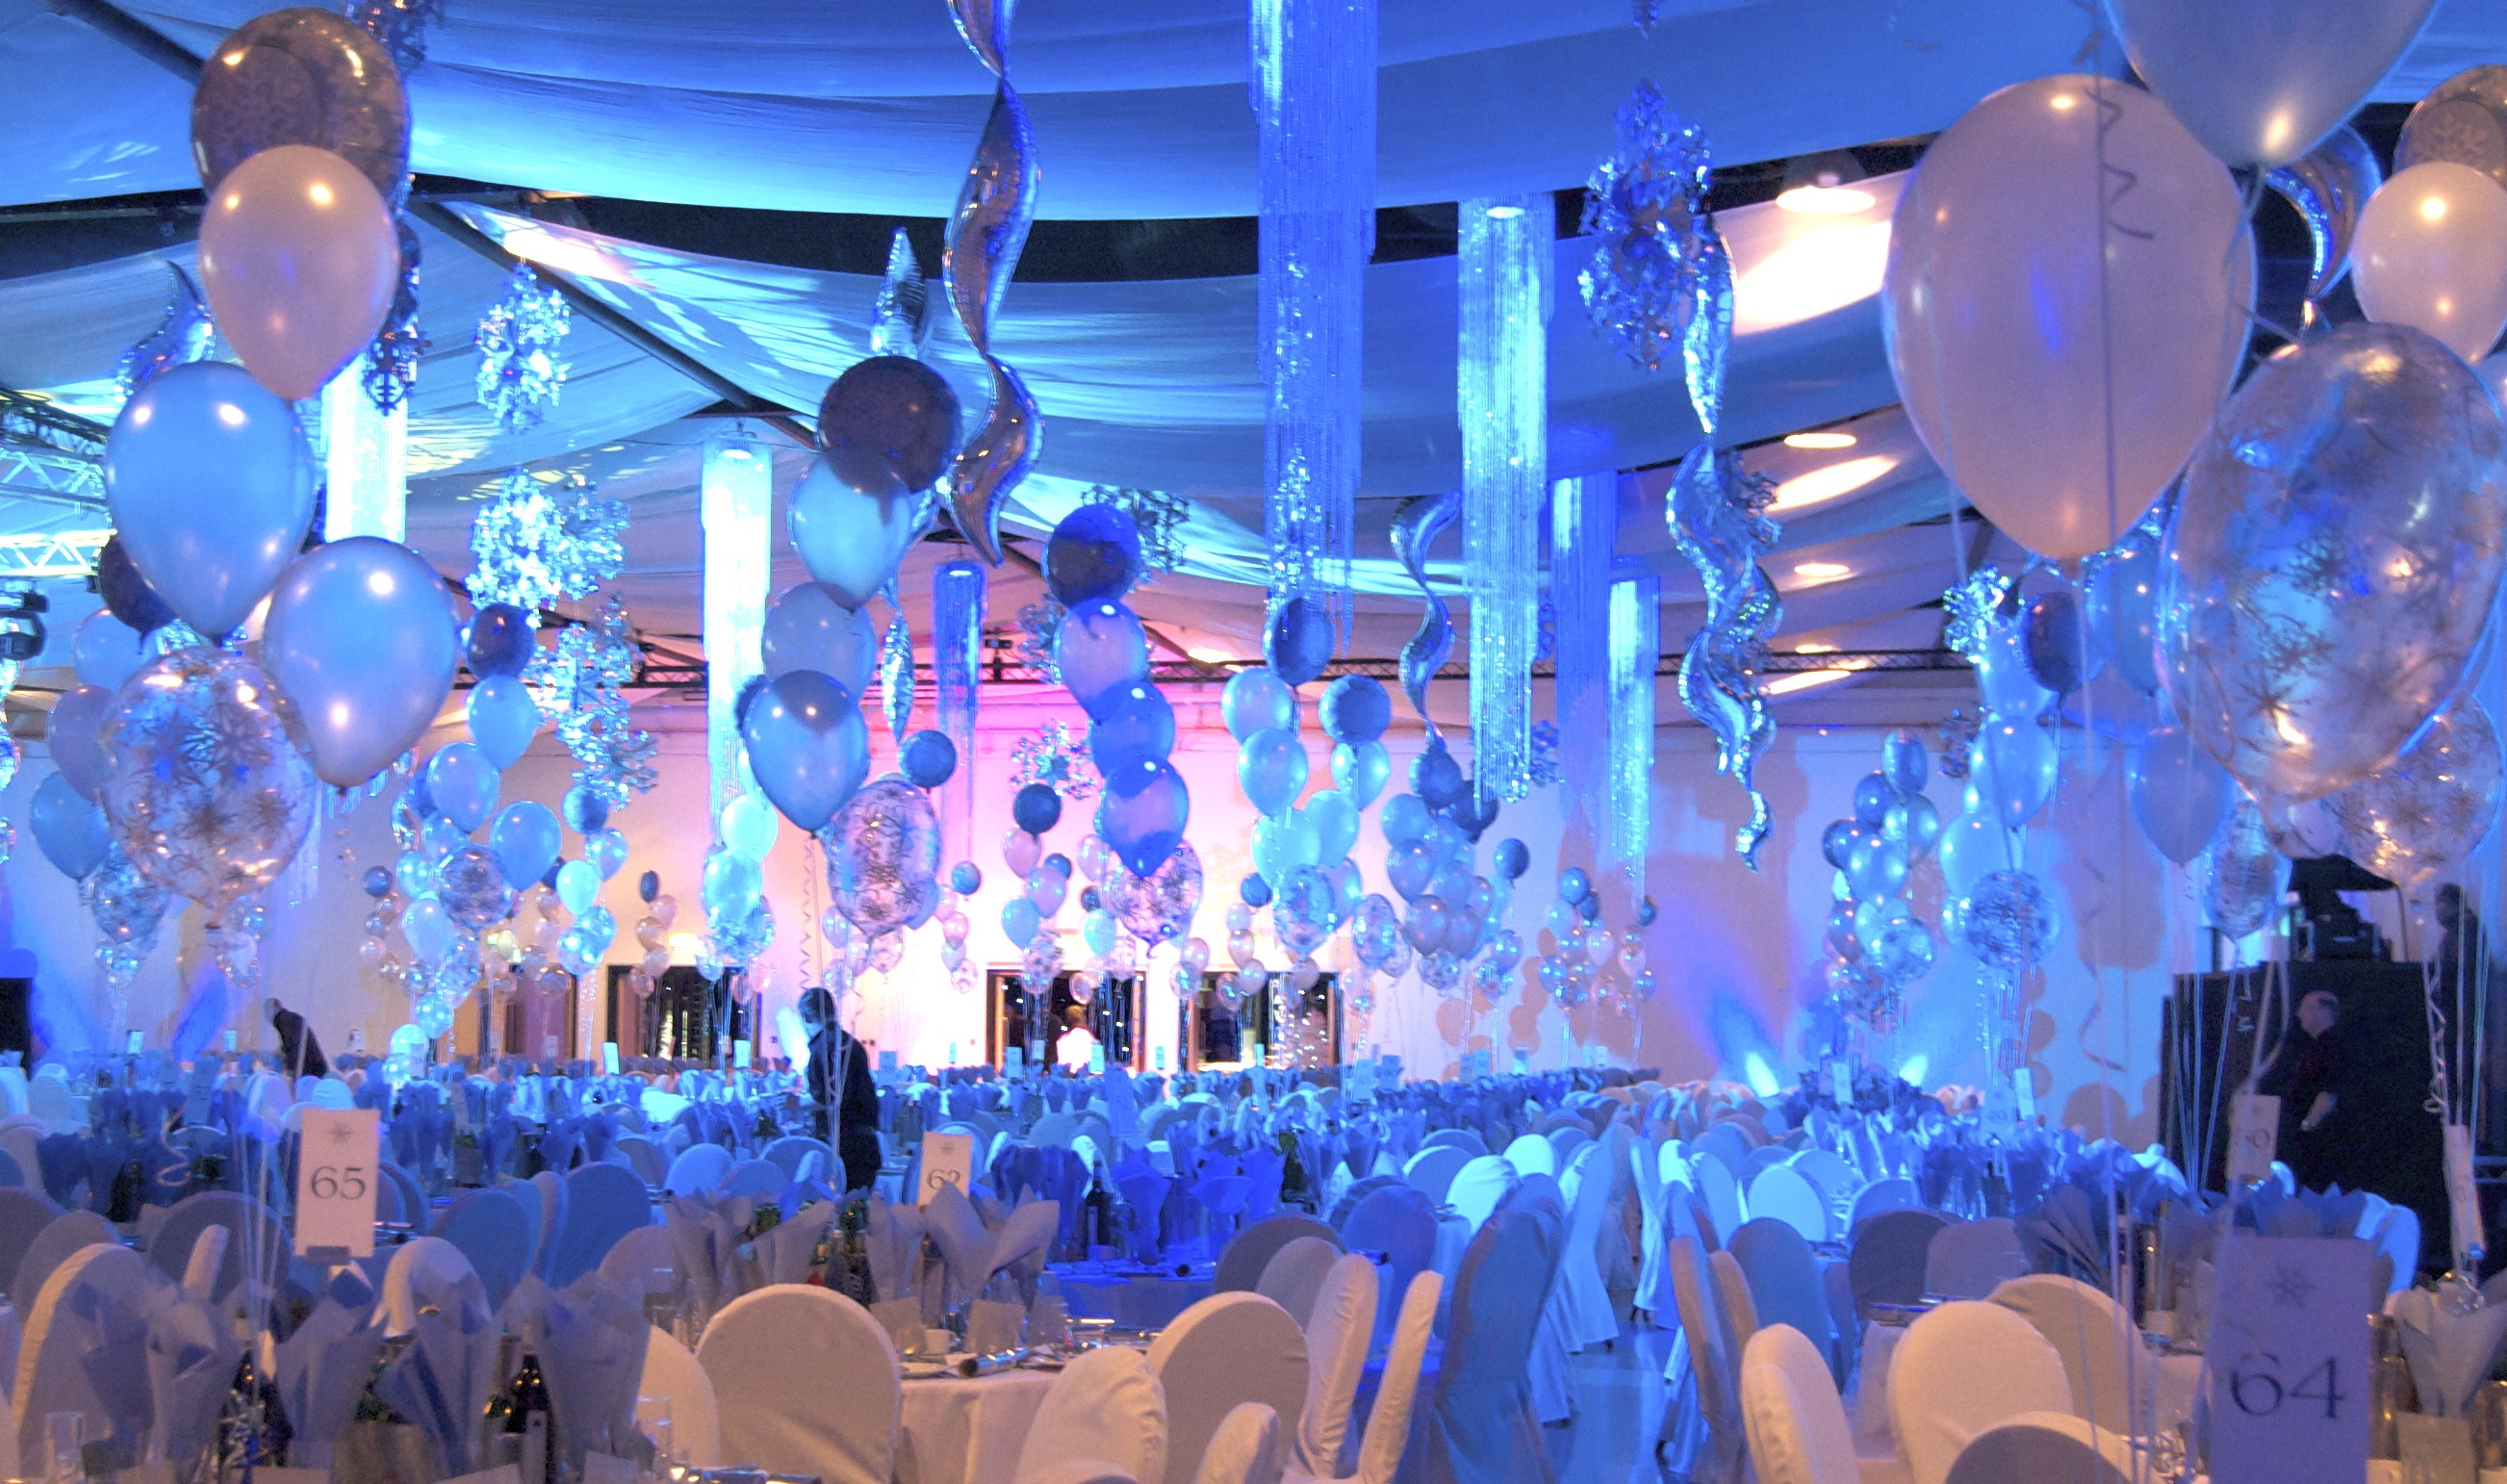 80 tables of 'ice' themed balloons - Event Decoration